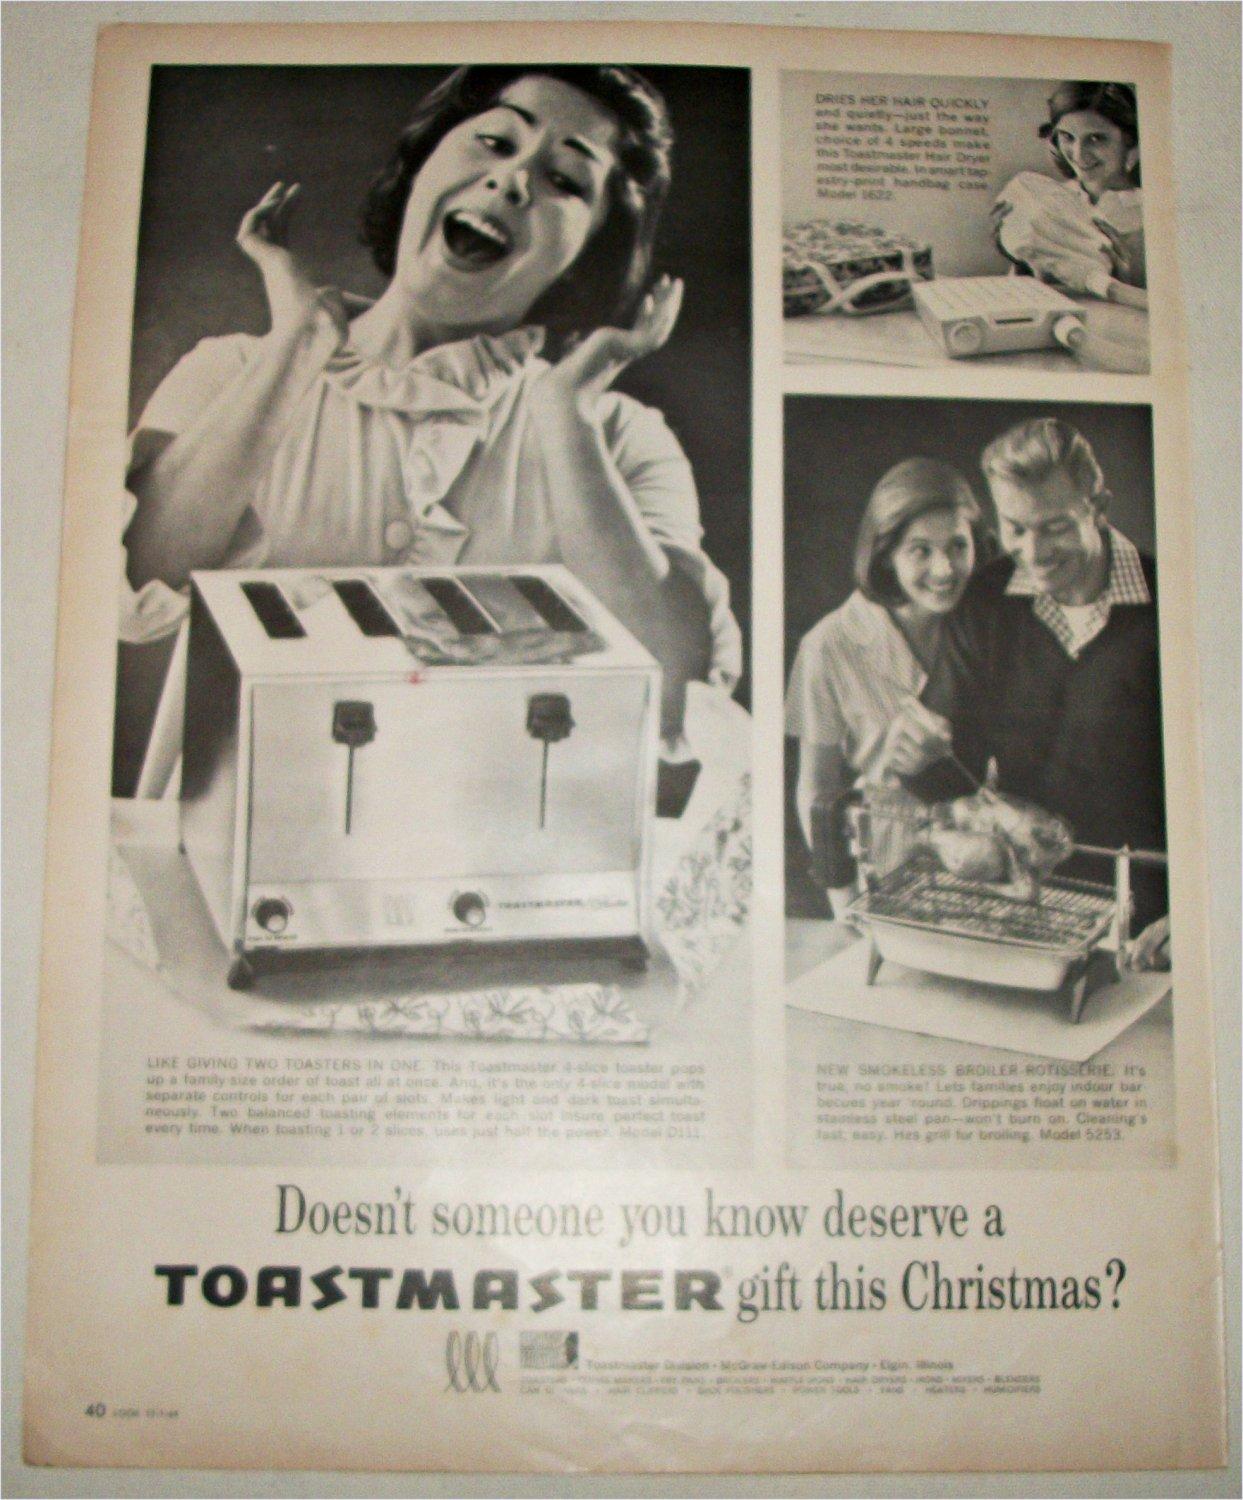 1964 Toastmaster Appliances ad